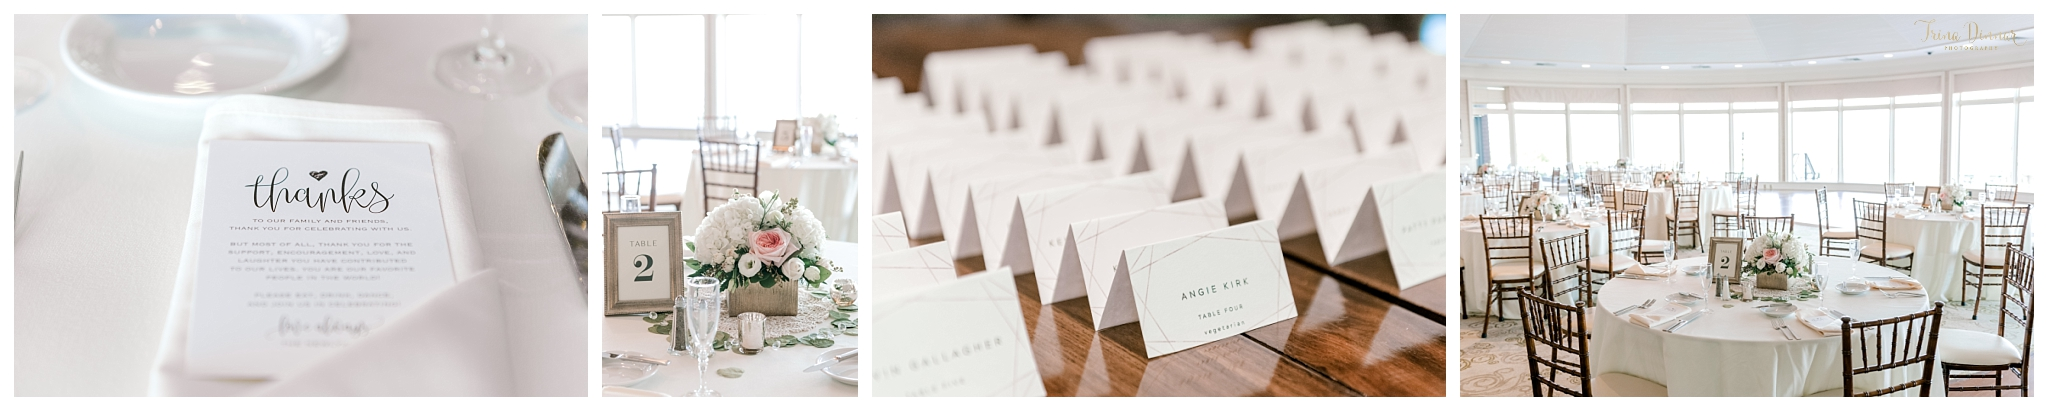 Point Lookout Wedding Reception Details